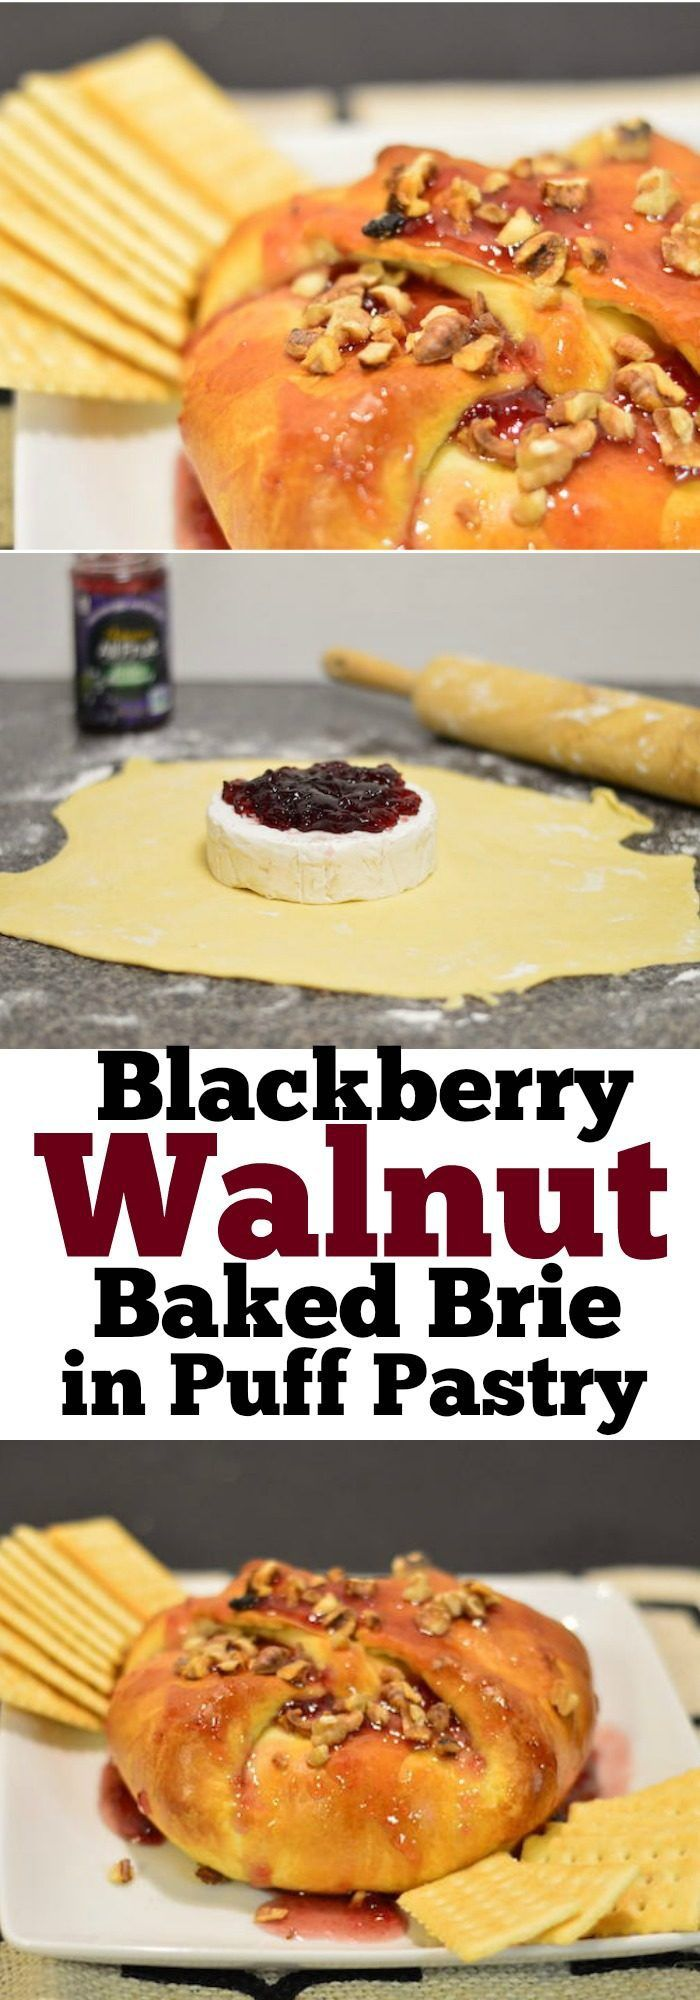 You have to try this Blackberry Walnut Baked Brie in Puff Pastry! It's the perfect game day snack, appetizer, or side dish. If you love cheese, this is a must try. Simple, smooth, and rich in flavor.